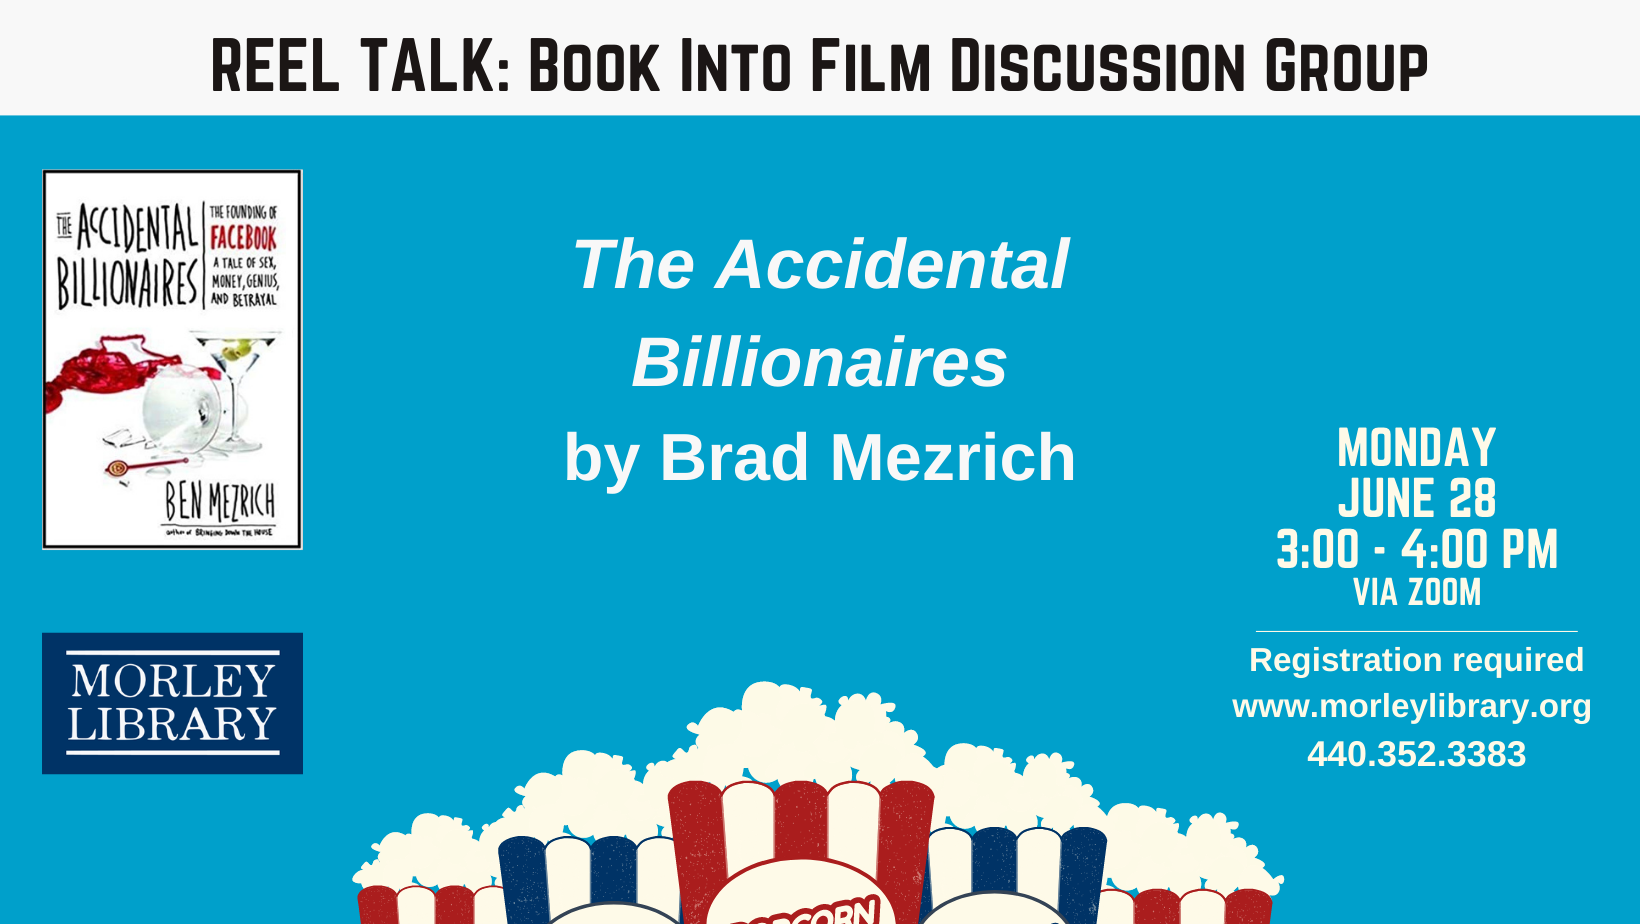 Reel Talk:  Book Into Film Discussion Group